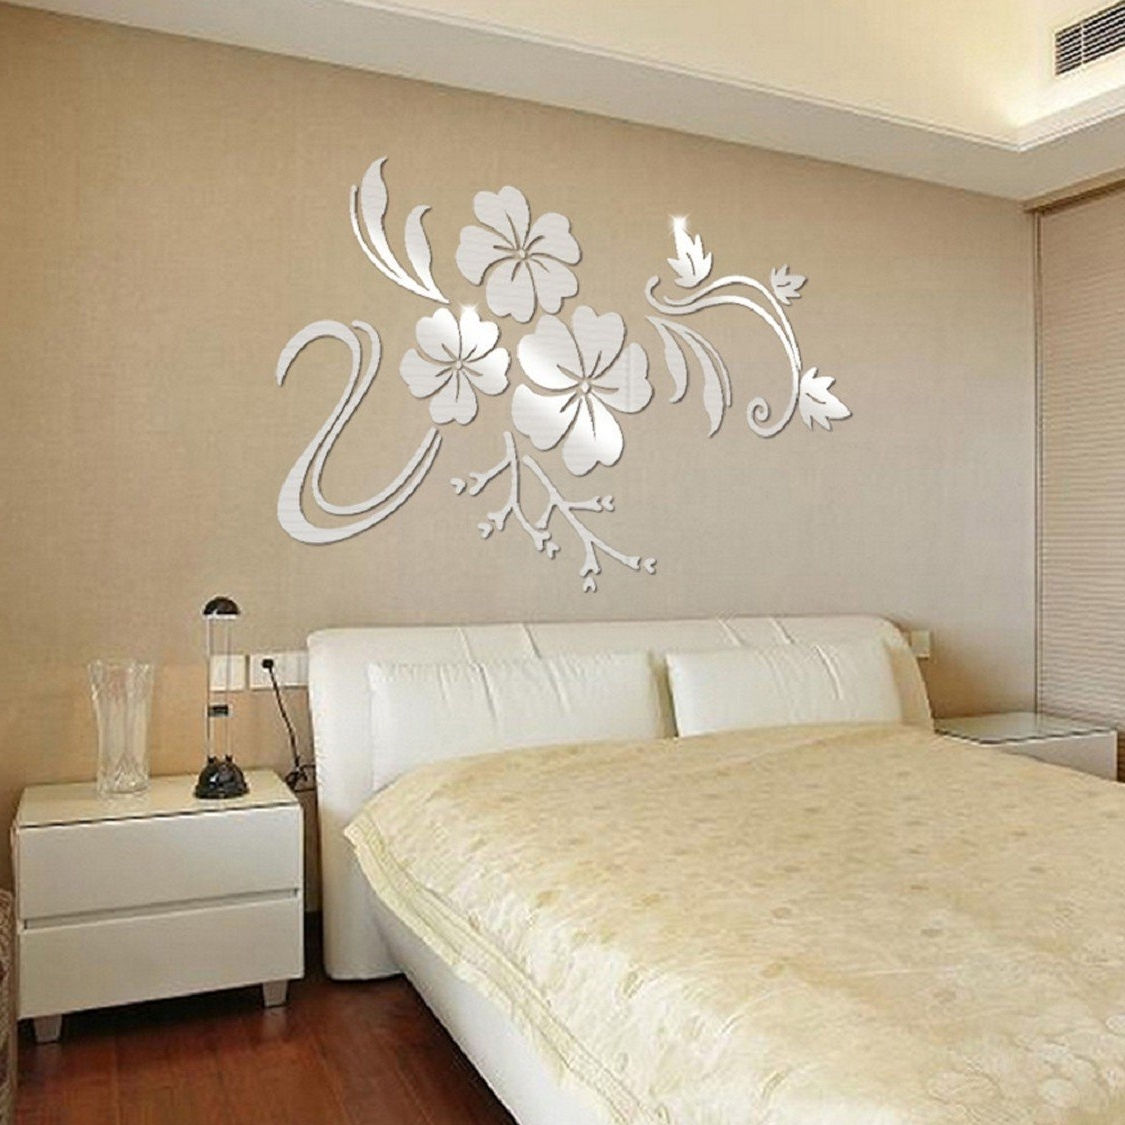 Amazon Wall Accents Within Well Known Ikevan 1Set Acrylic Art 3D Mirror Flower Wall Stickers Diy Home (Gallery 1 of 15)